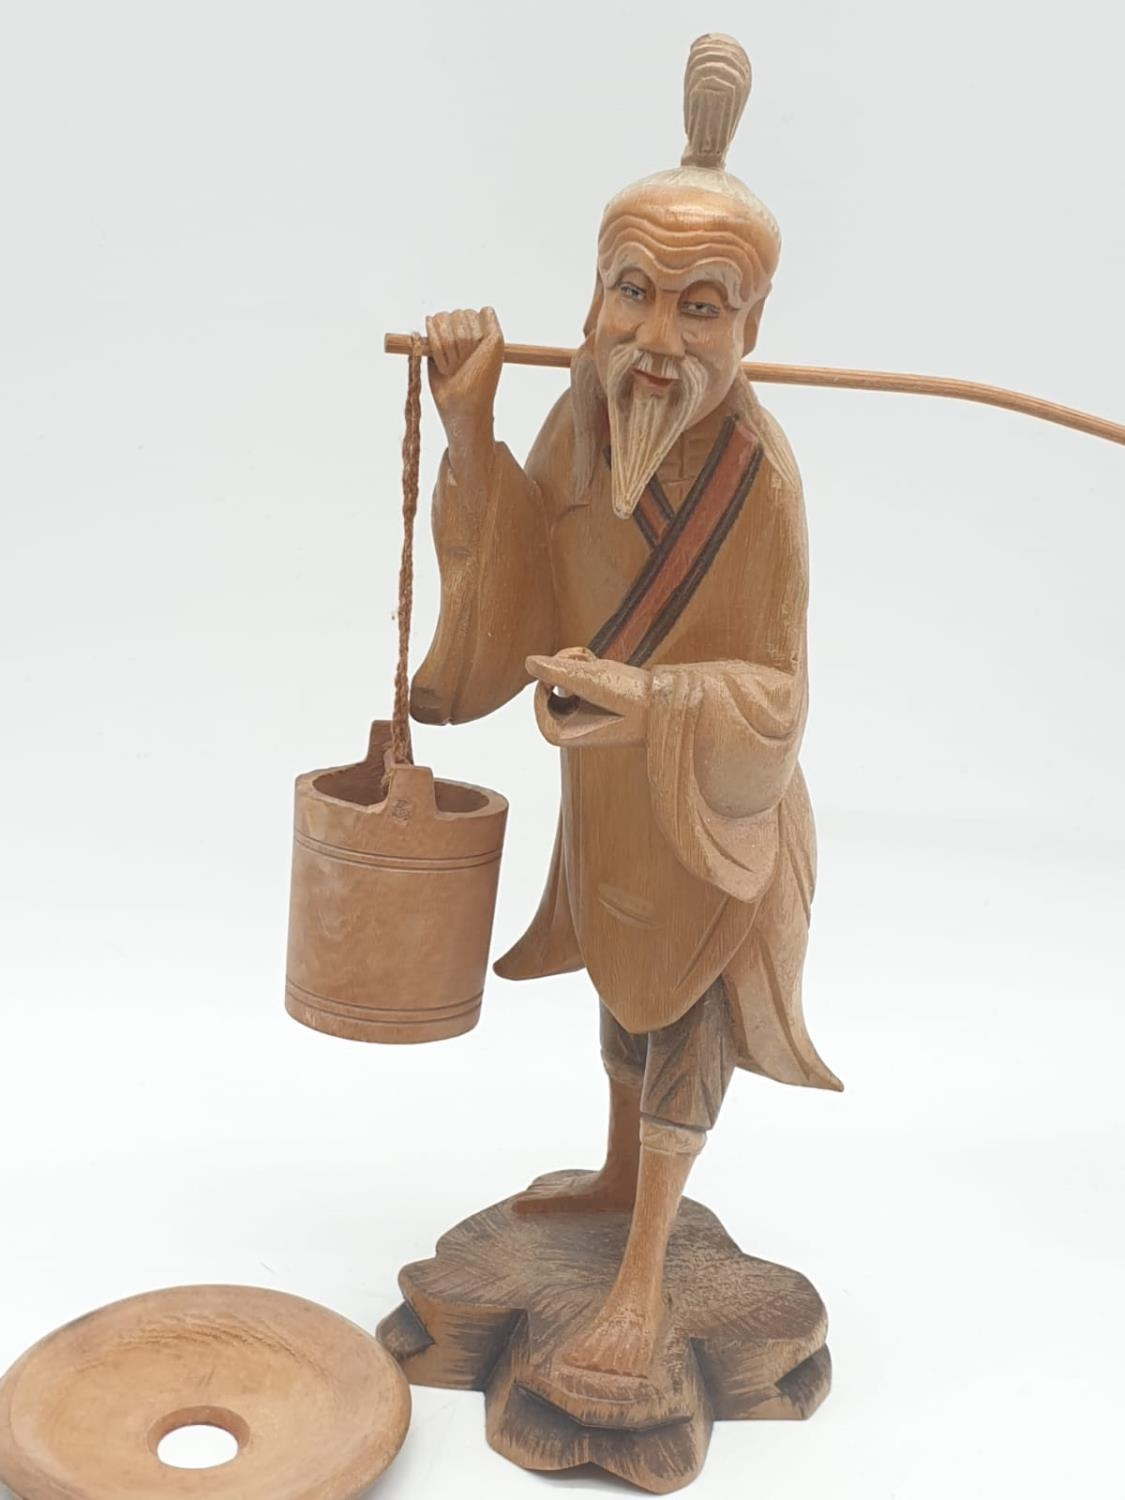 Hand carved wooden figure a Chinese pedlar. 20cm tall. - Image 2 of 7